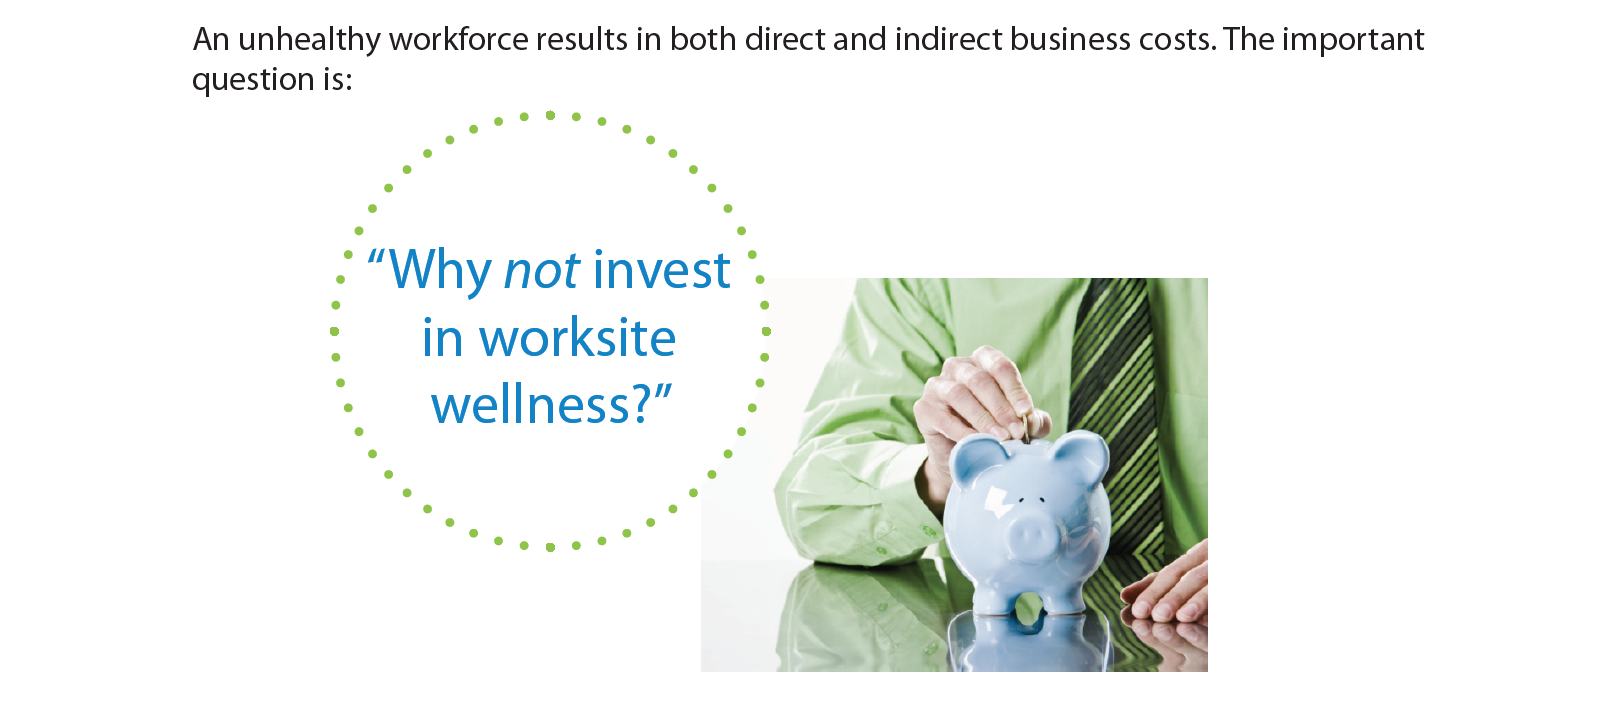 Wellbeing At Work Is Good For Business